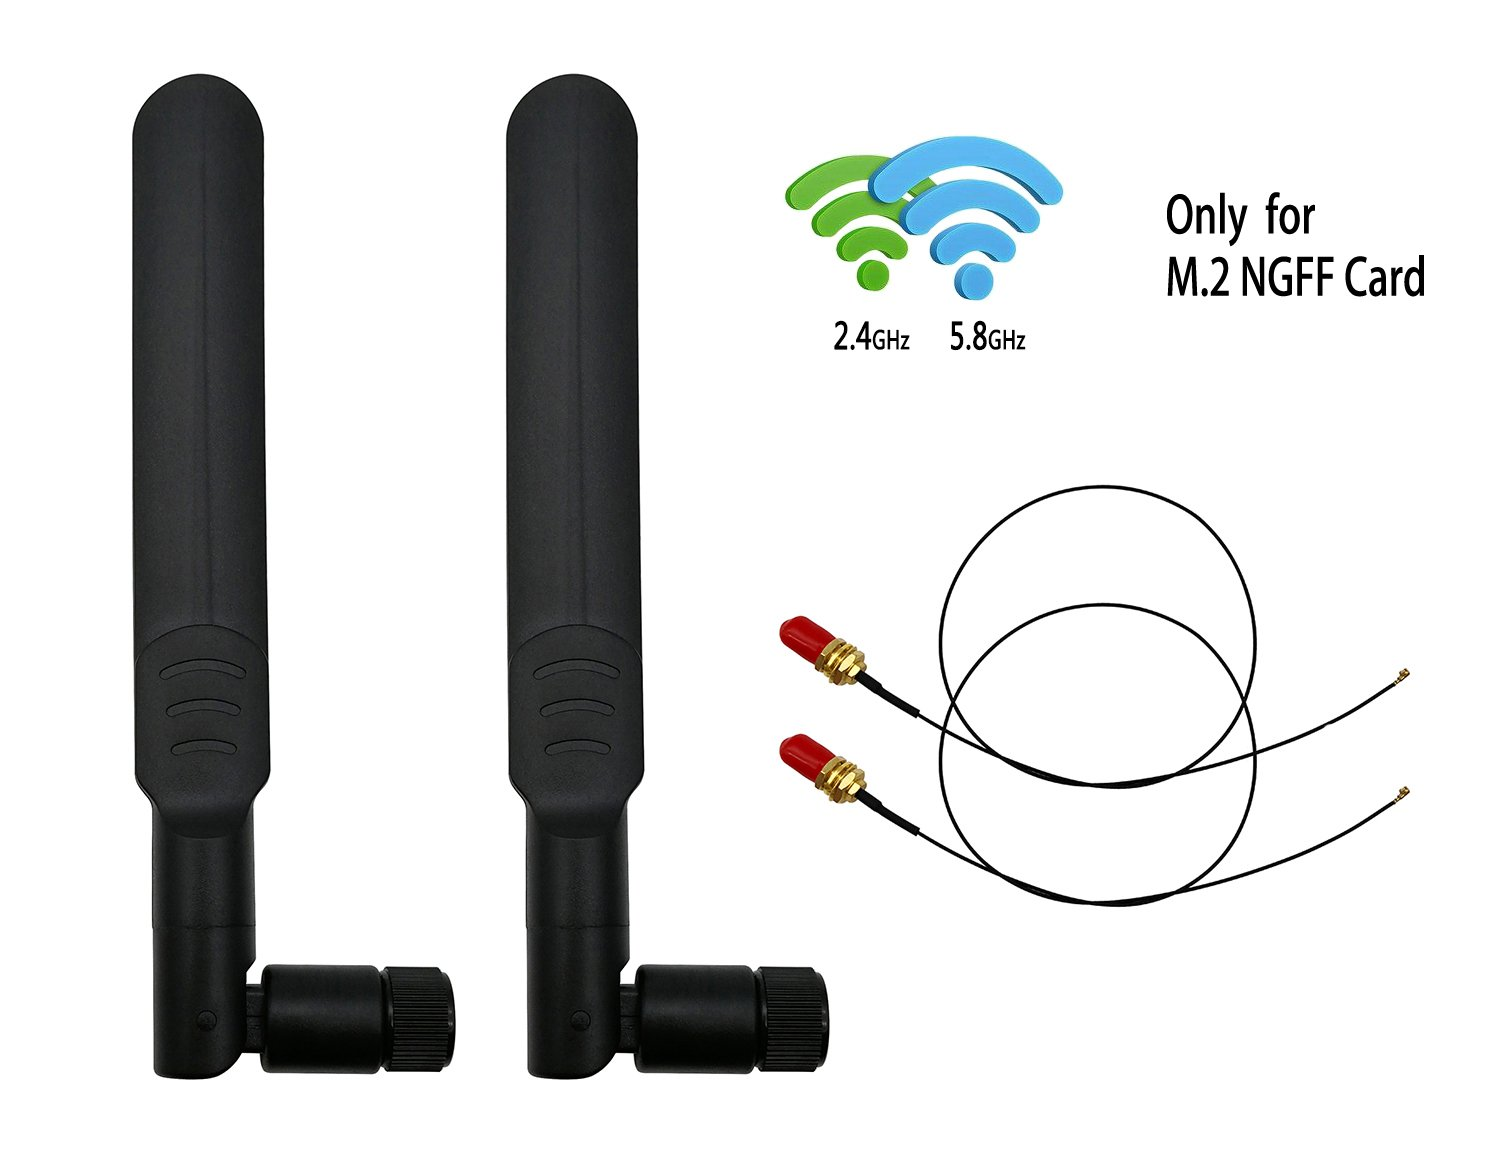 8dBi 2.4GHz 5.8GHz Dual Band Omni-directional WiFi RP-SMA Antenna + 35cm U.fl/IPEX to RP-SMA Female Pigtail Cable for M.2 NGFF Wireless Card Routers Repeater Desktop PC FPV UAV Drone by ELT-Home (Image #1)